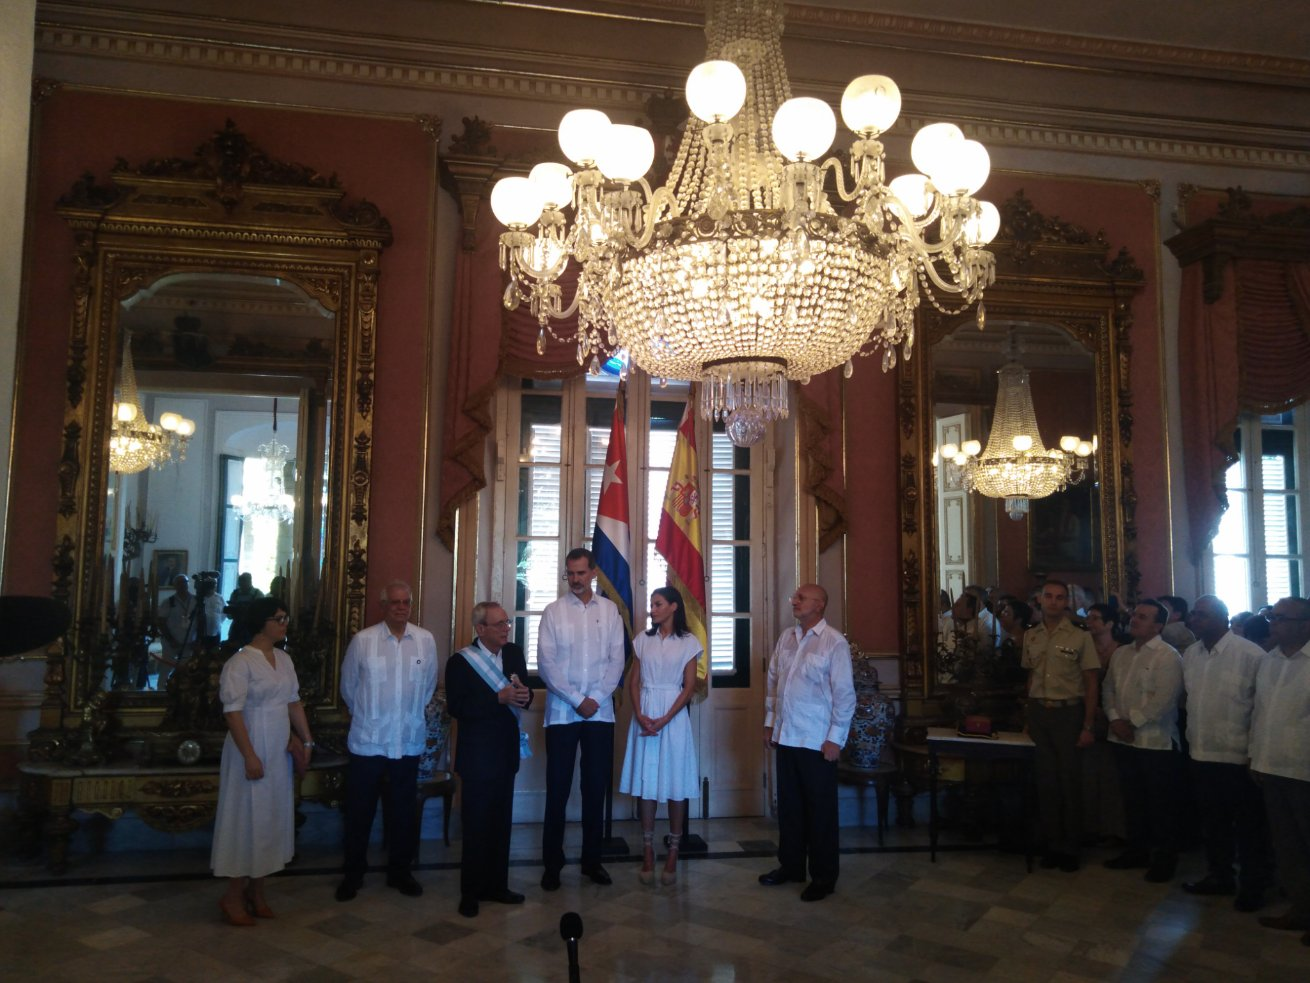 Spanish King and Queen tour Old Havana, decorateEusbeio Leal